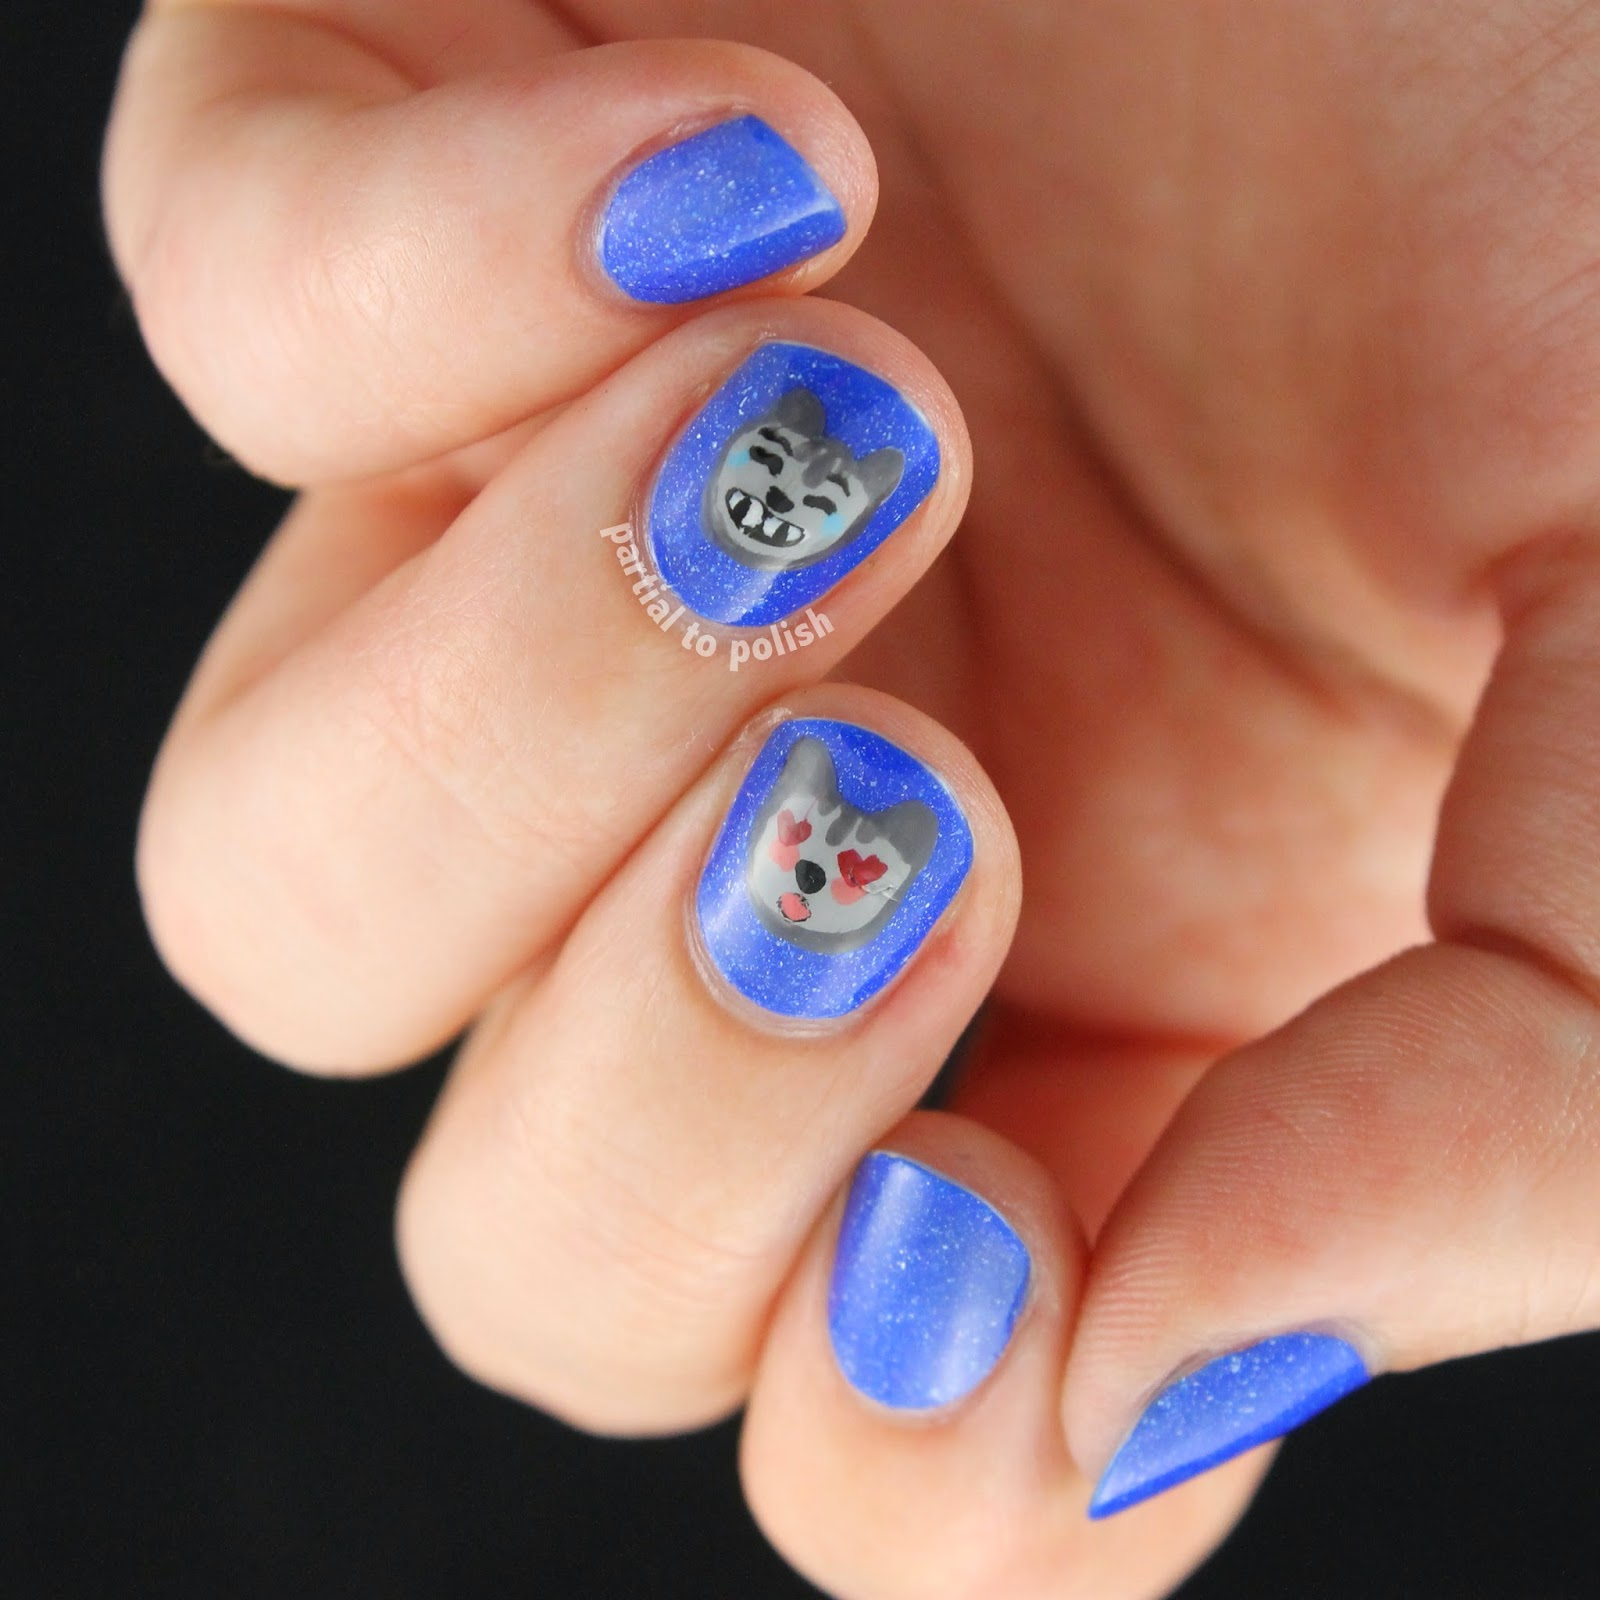 Cat Emoji Nails Featuring piCture pOlish Forget Me Not